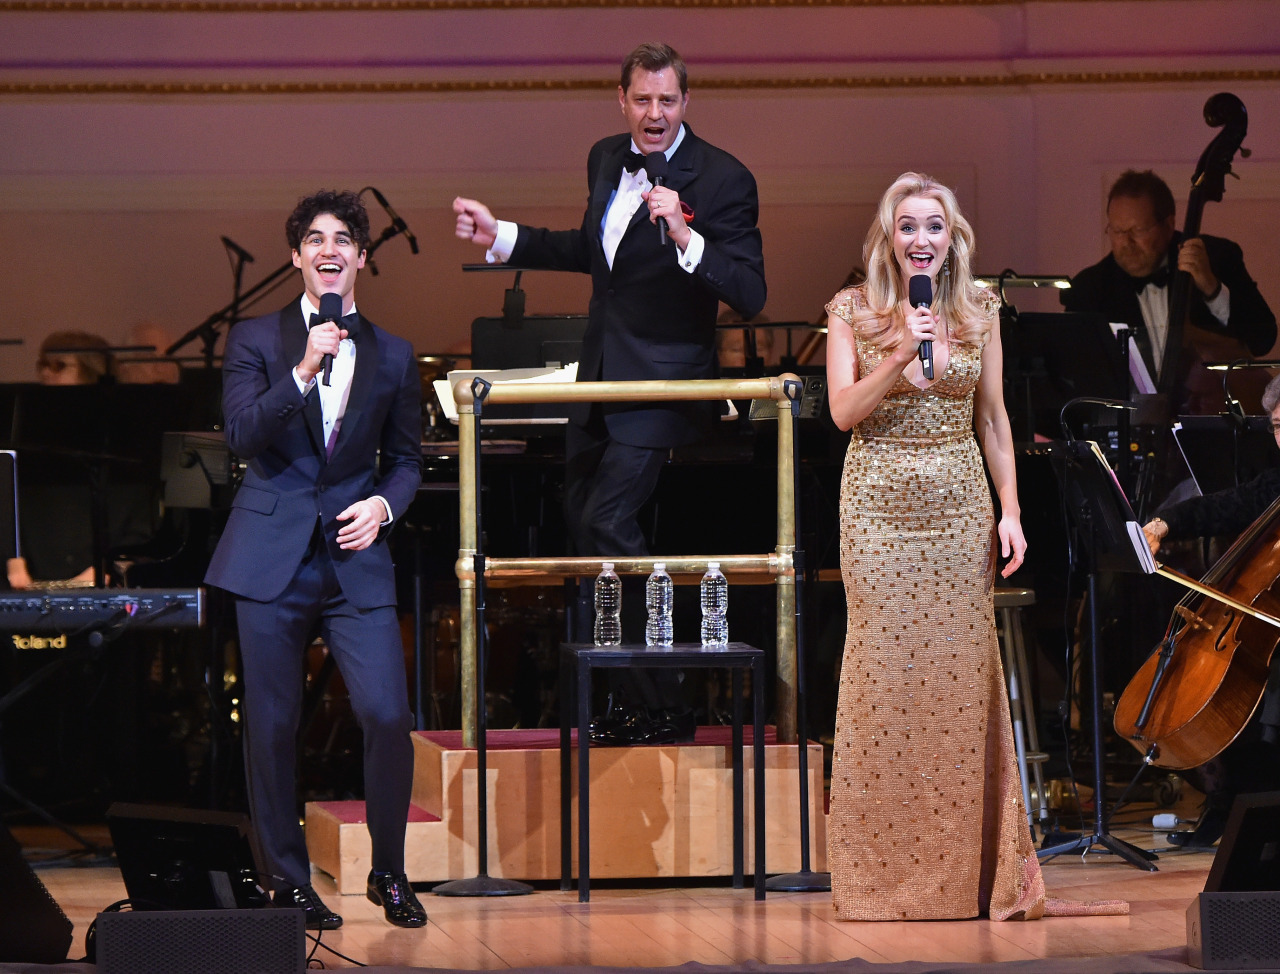 Performing with Darren Criss and The New York Pops at Carnegie Hall